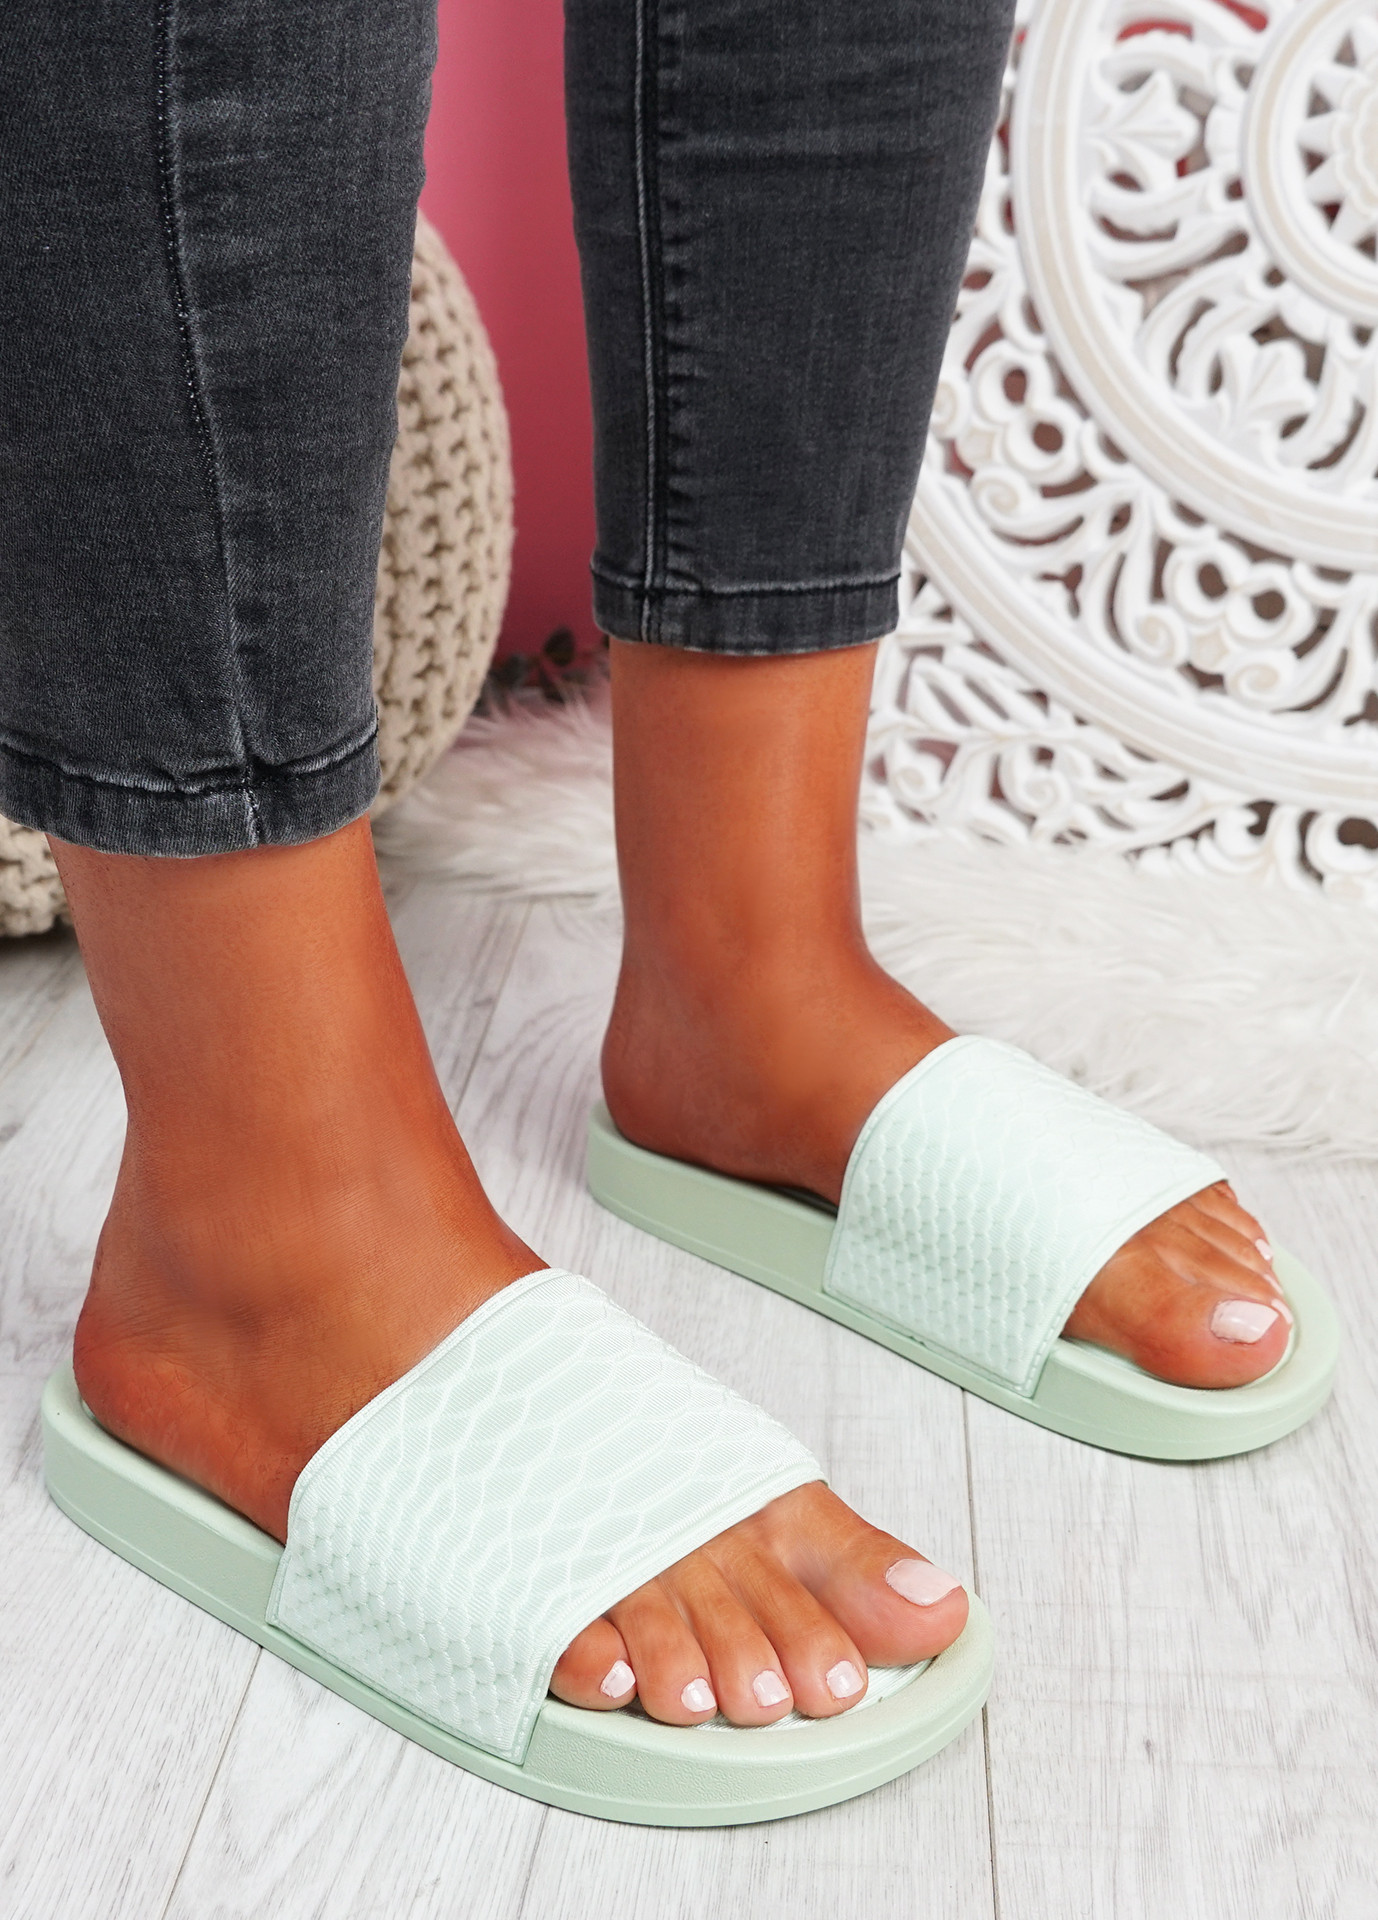 Soha Green Flat Sandals Sliders